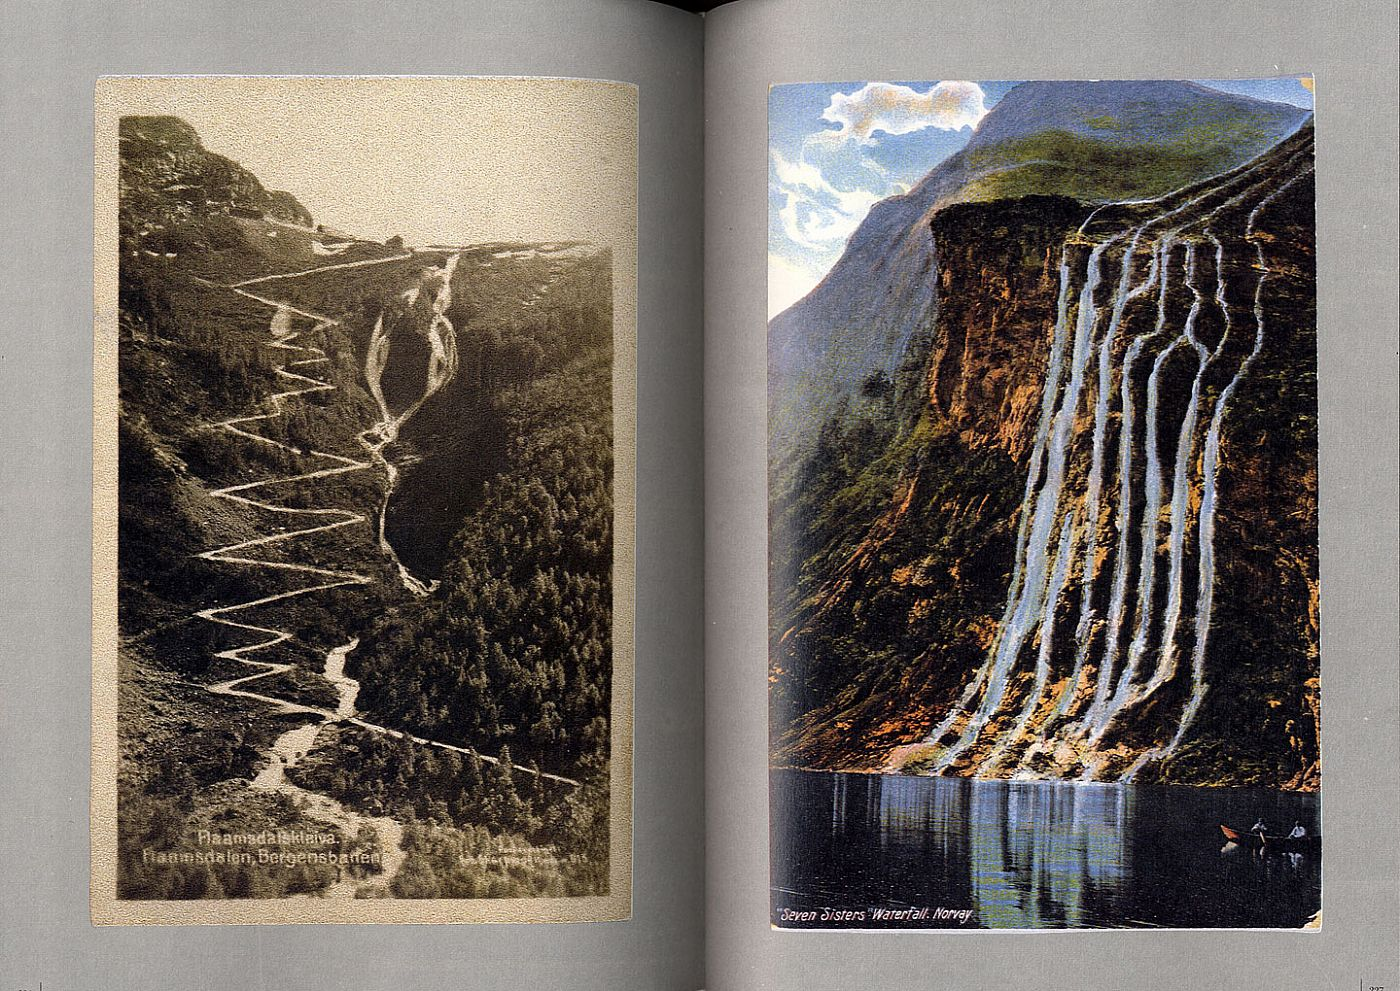 Tadanori Yokoo: Waterfall Rapture: Postcards of Falling Water: My Addiction, My Collection, My Edition